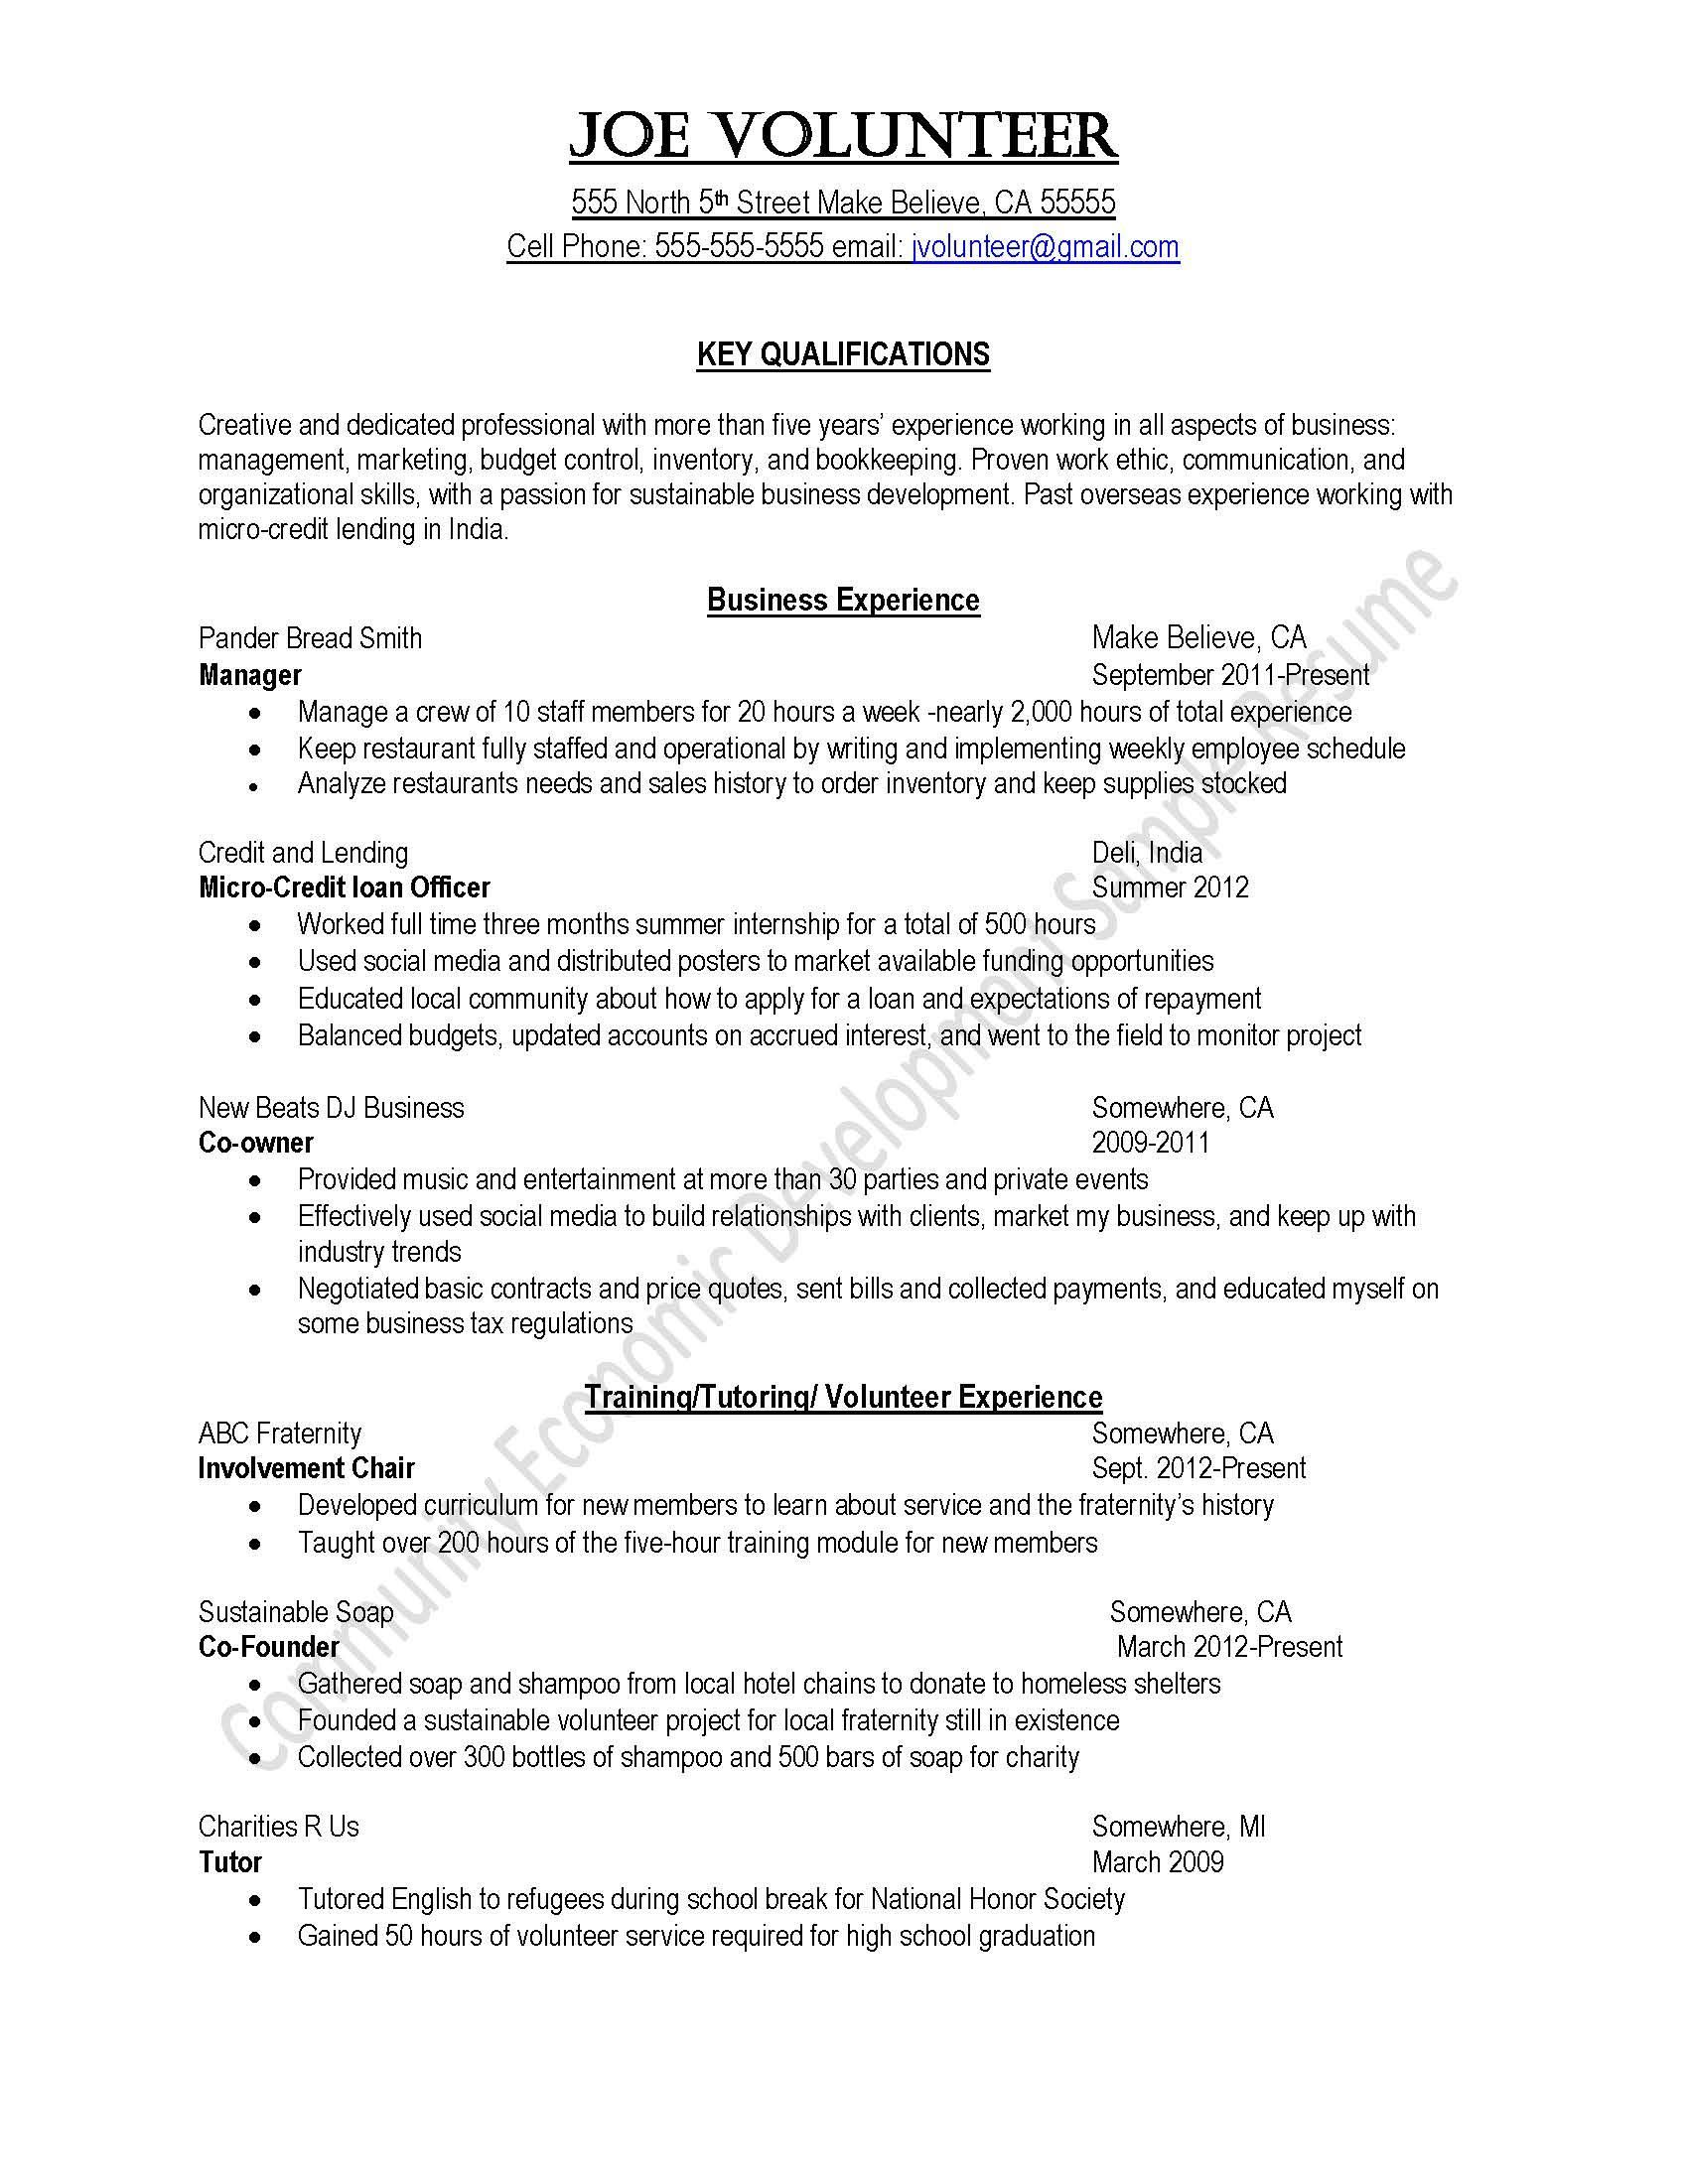 Volunteer Resume Samples Resume Samples Uva Career Center Agriculture Click Enlarge Peace